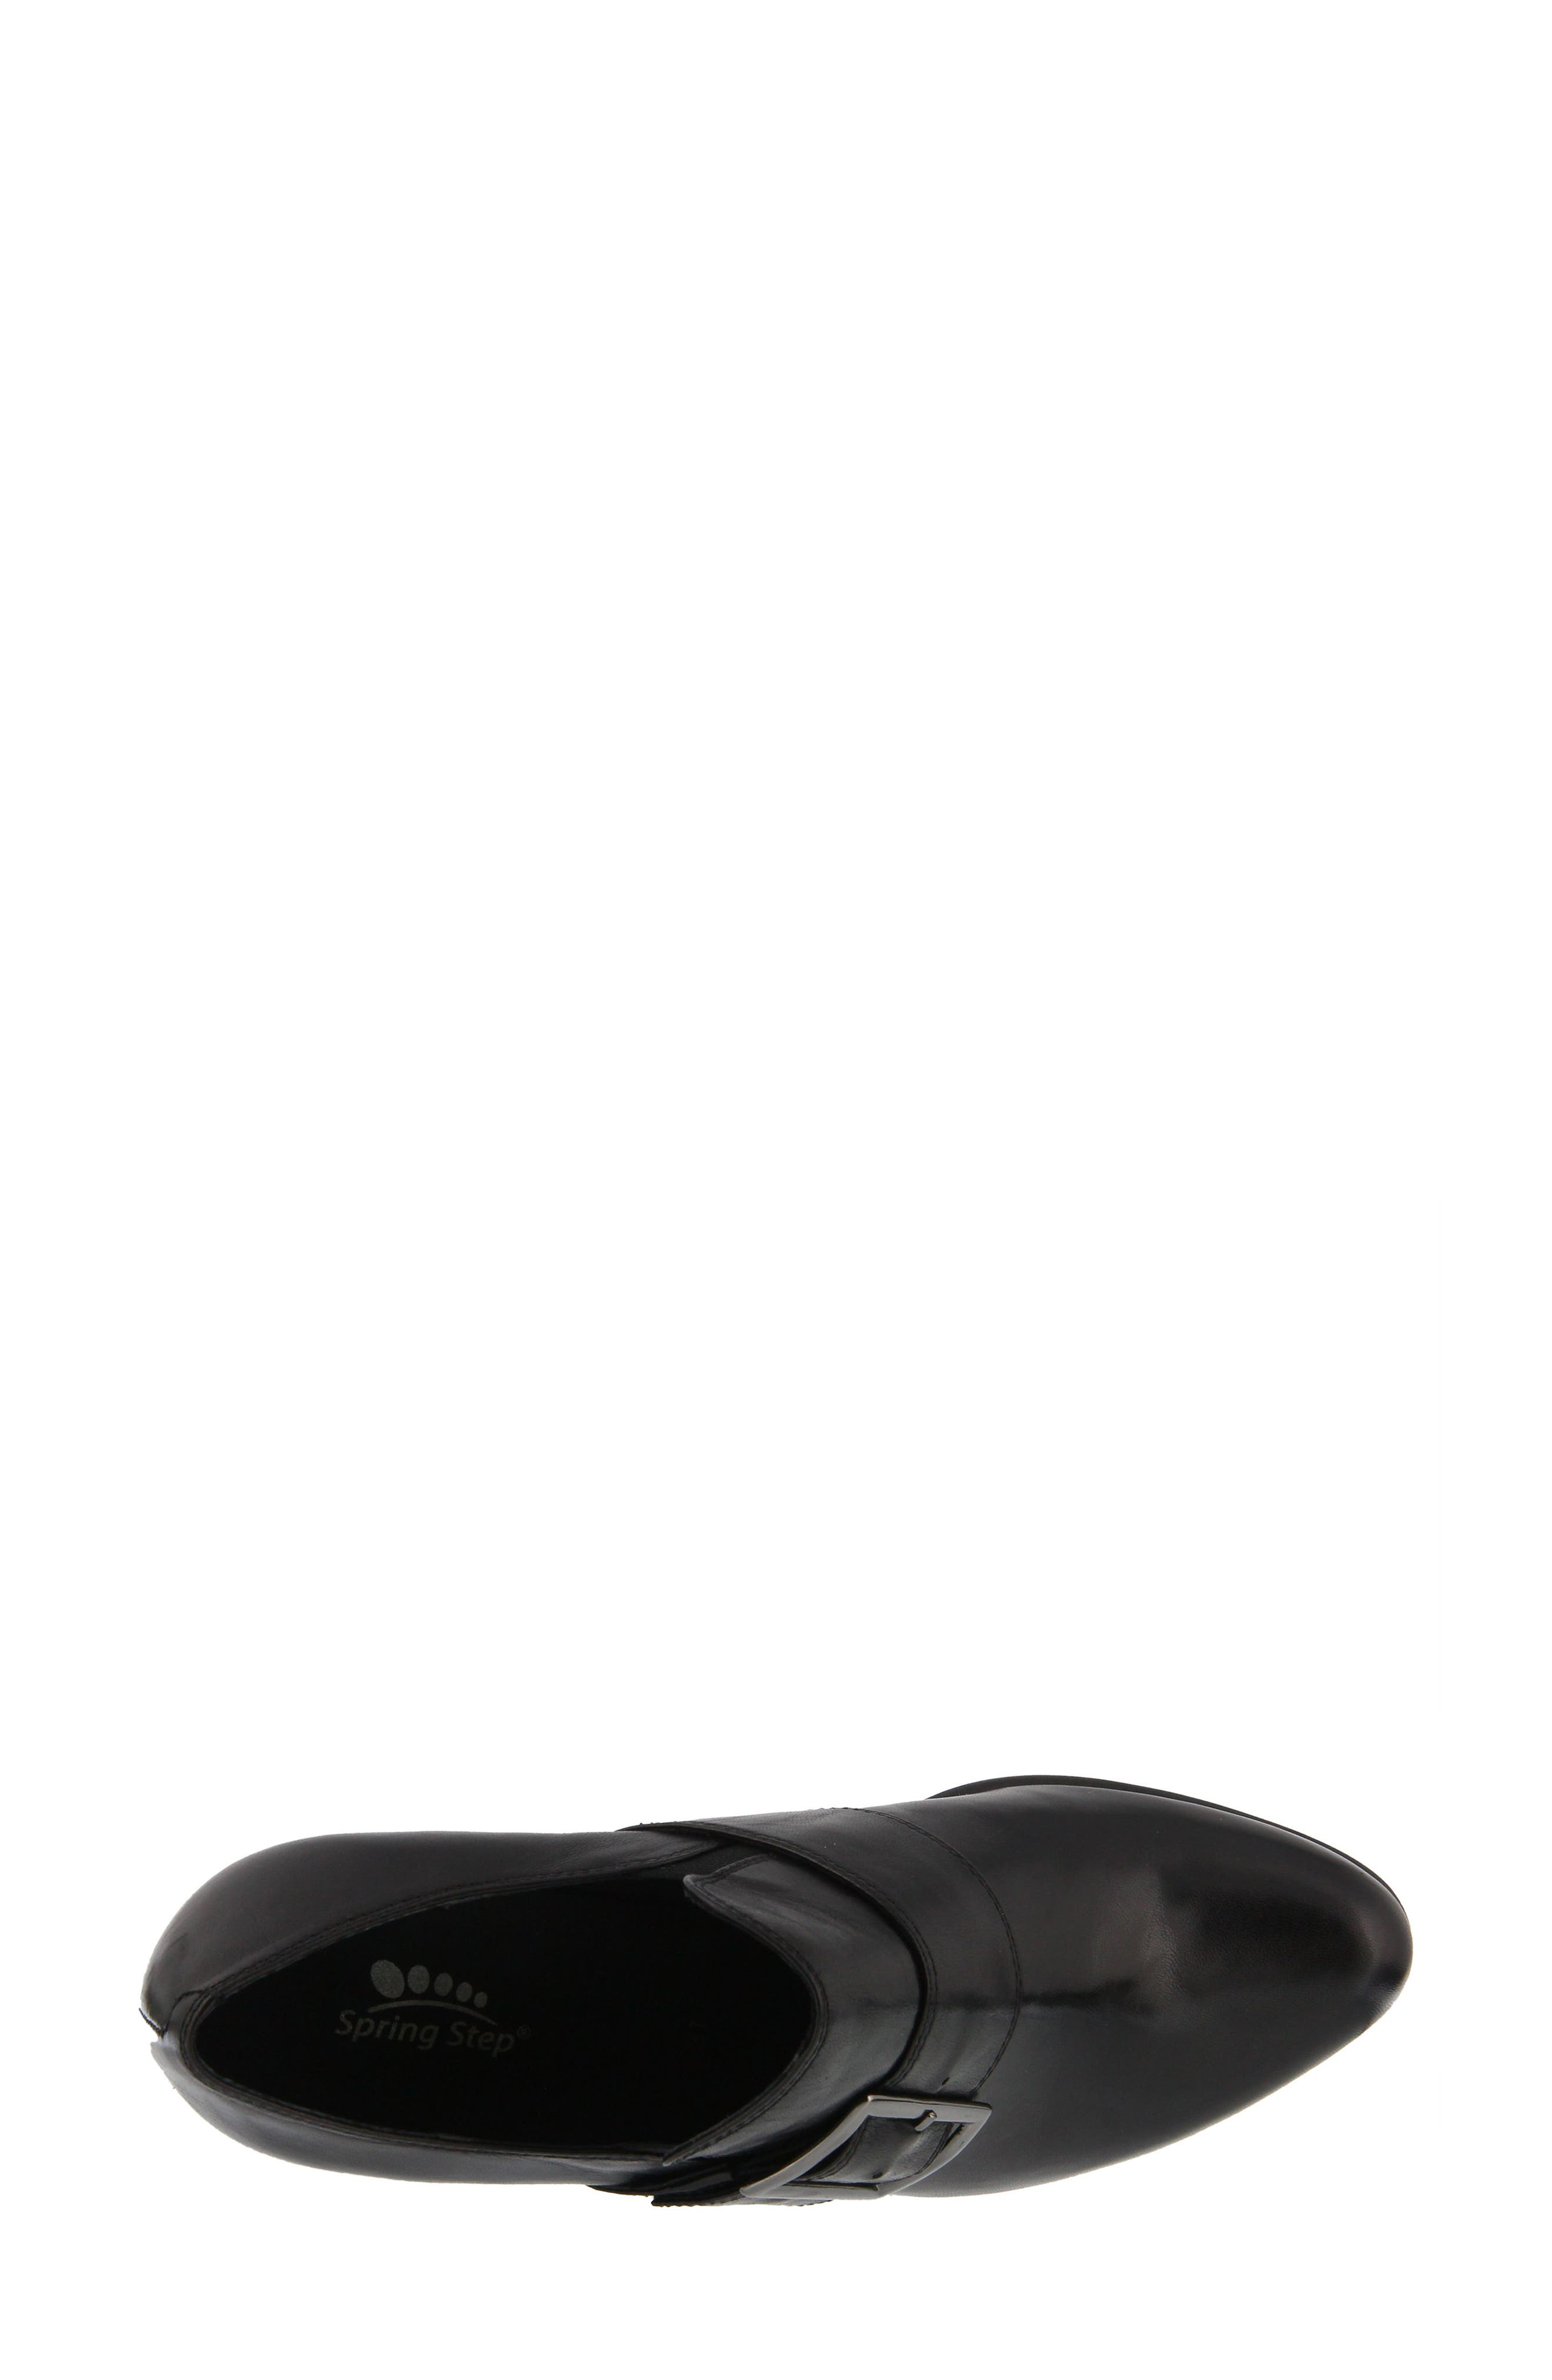 Dayana Bootie,                             Alternate thumbnail 4, color,                             BLACK LEATHER